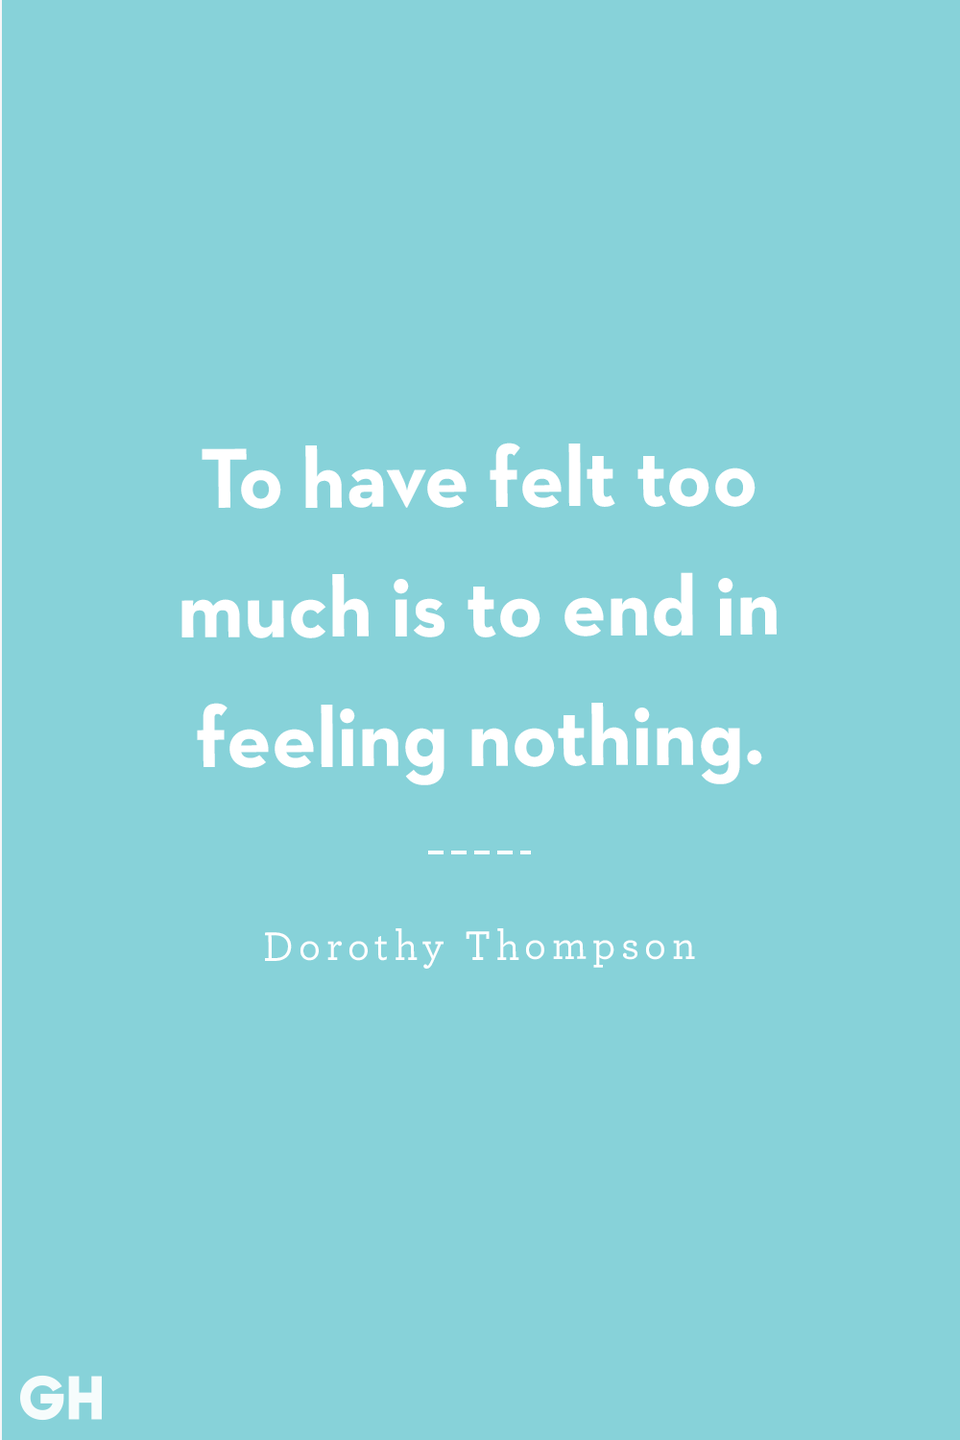 <p>To have felt too much is to end in feeling nothing.</p>